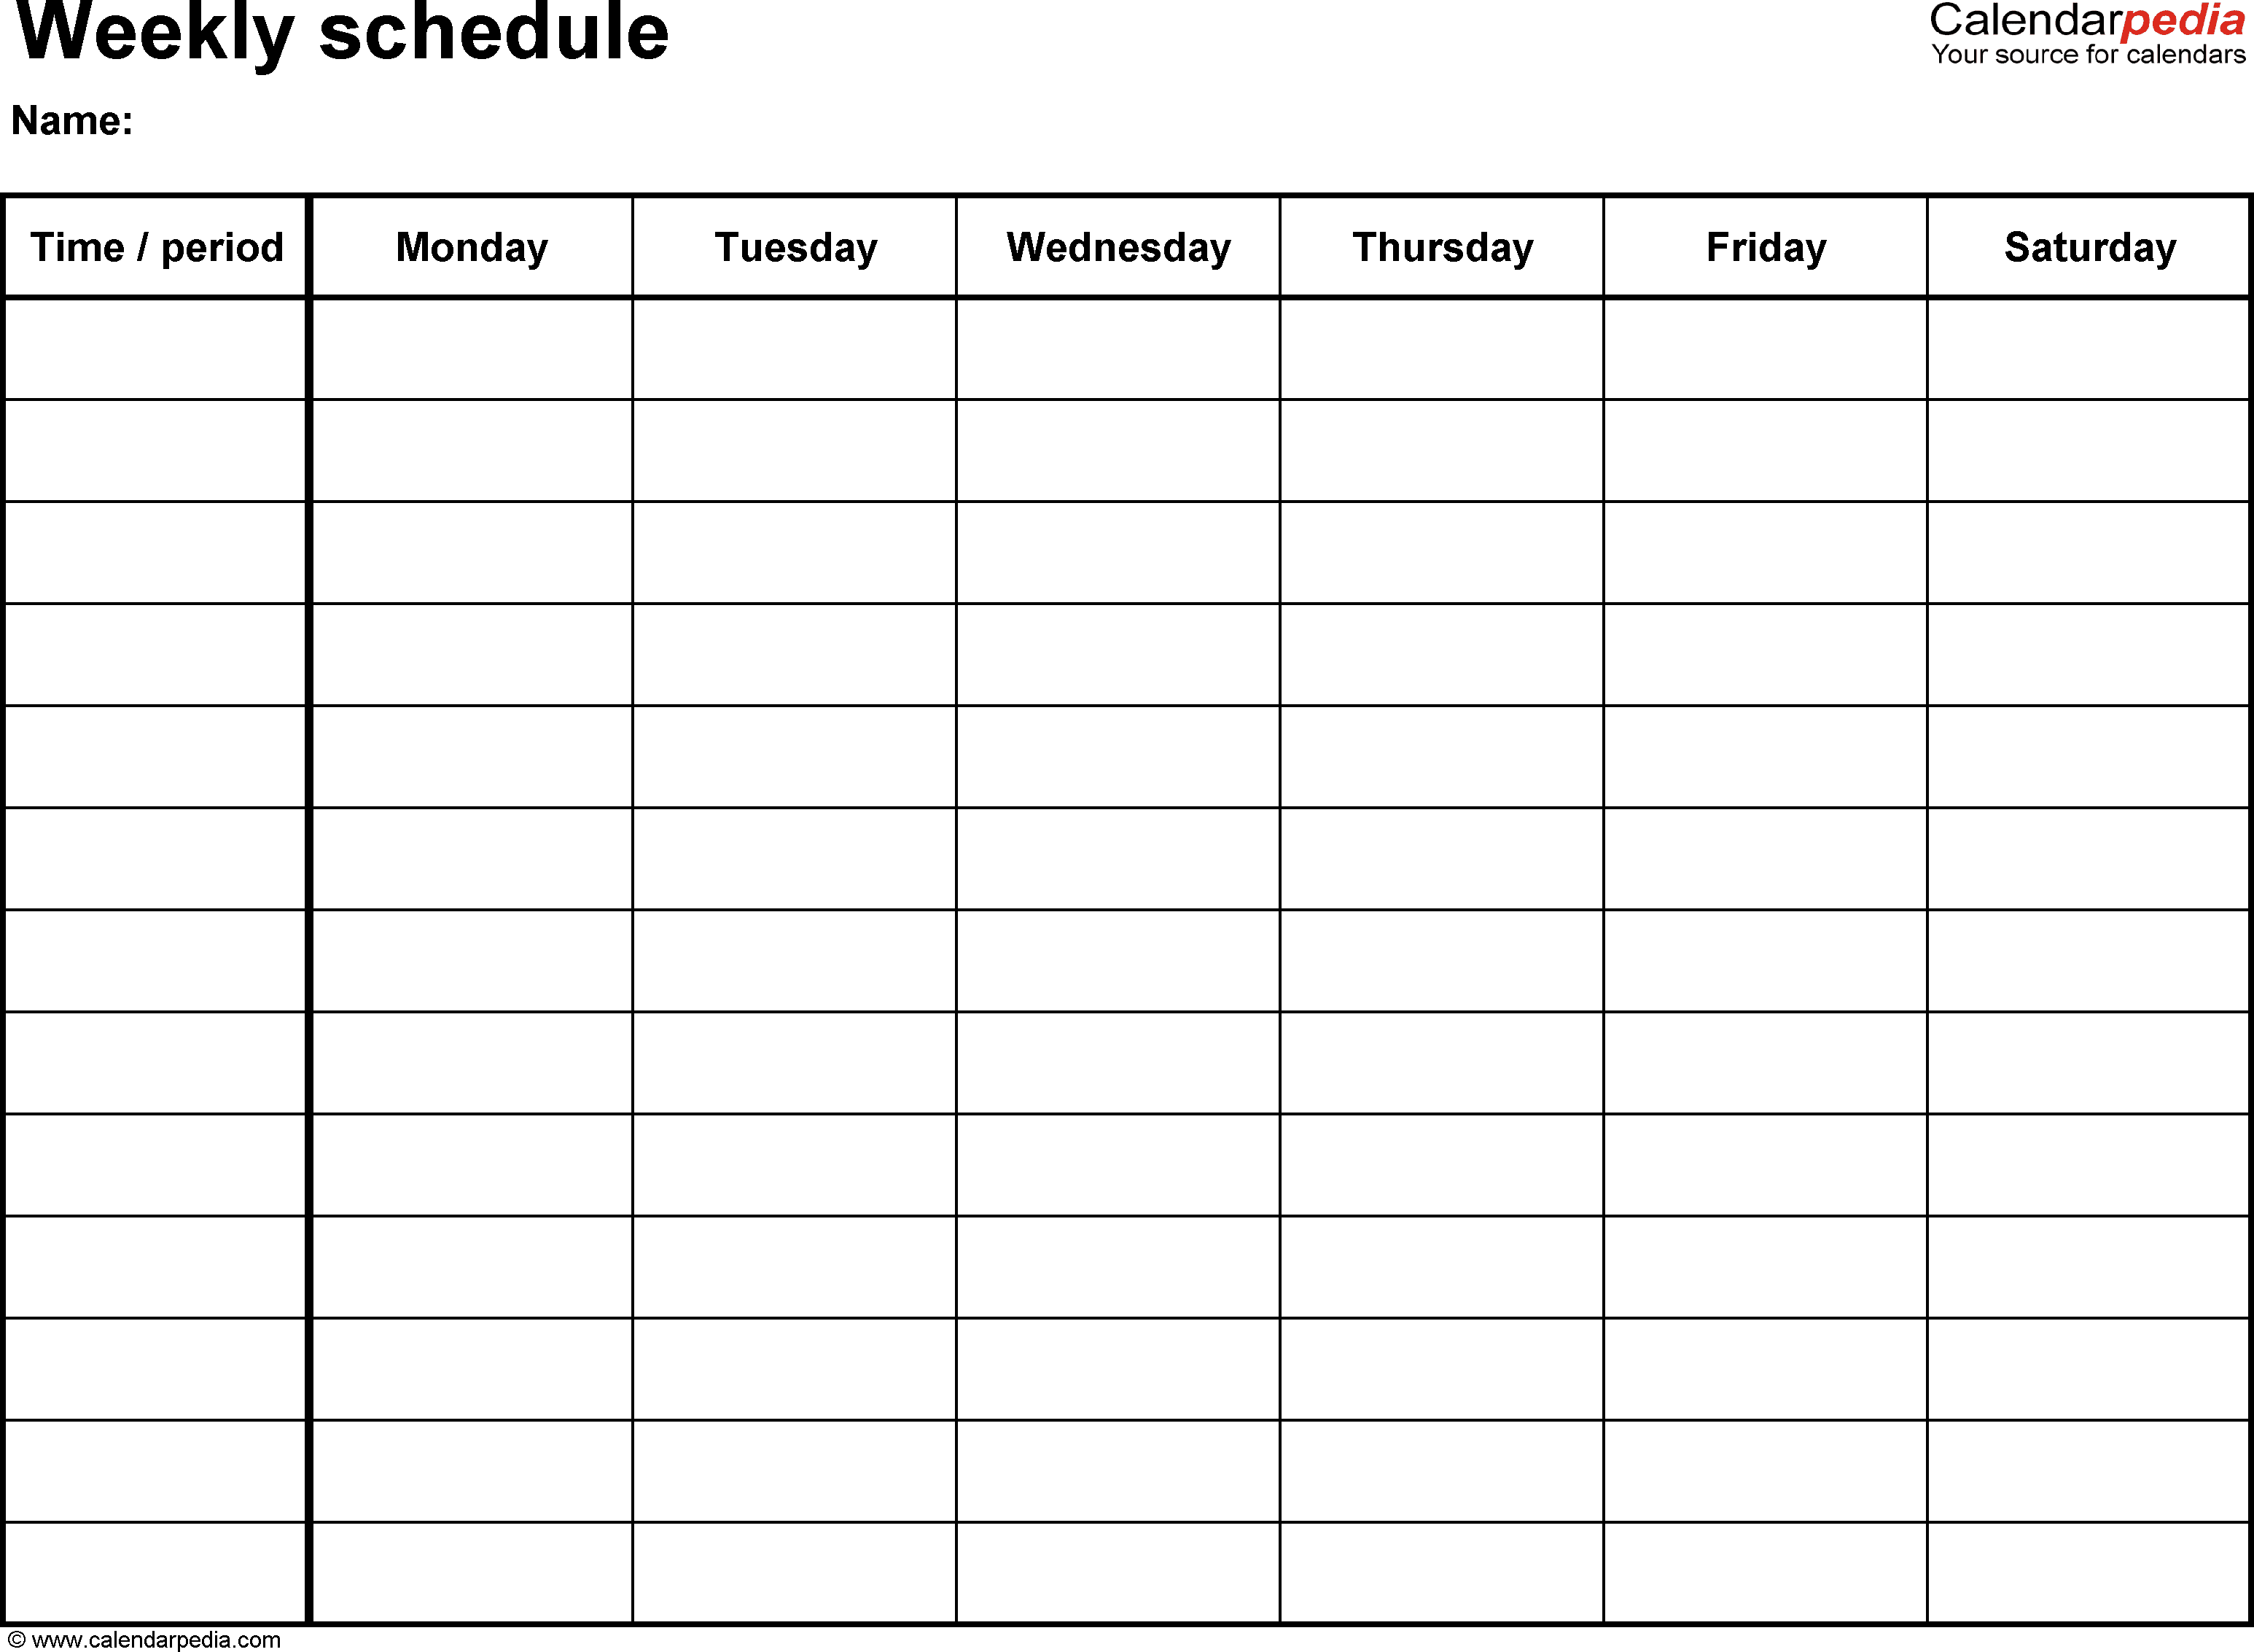 29 Images of Weekly Workout Schedule Template | leseriail.com